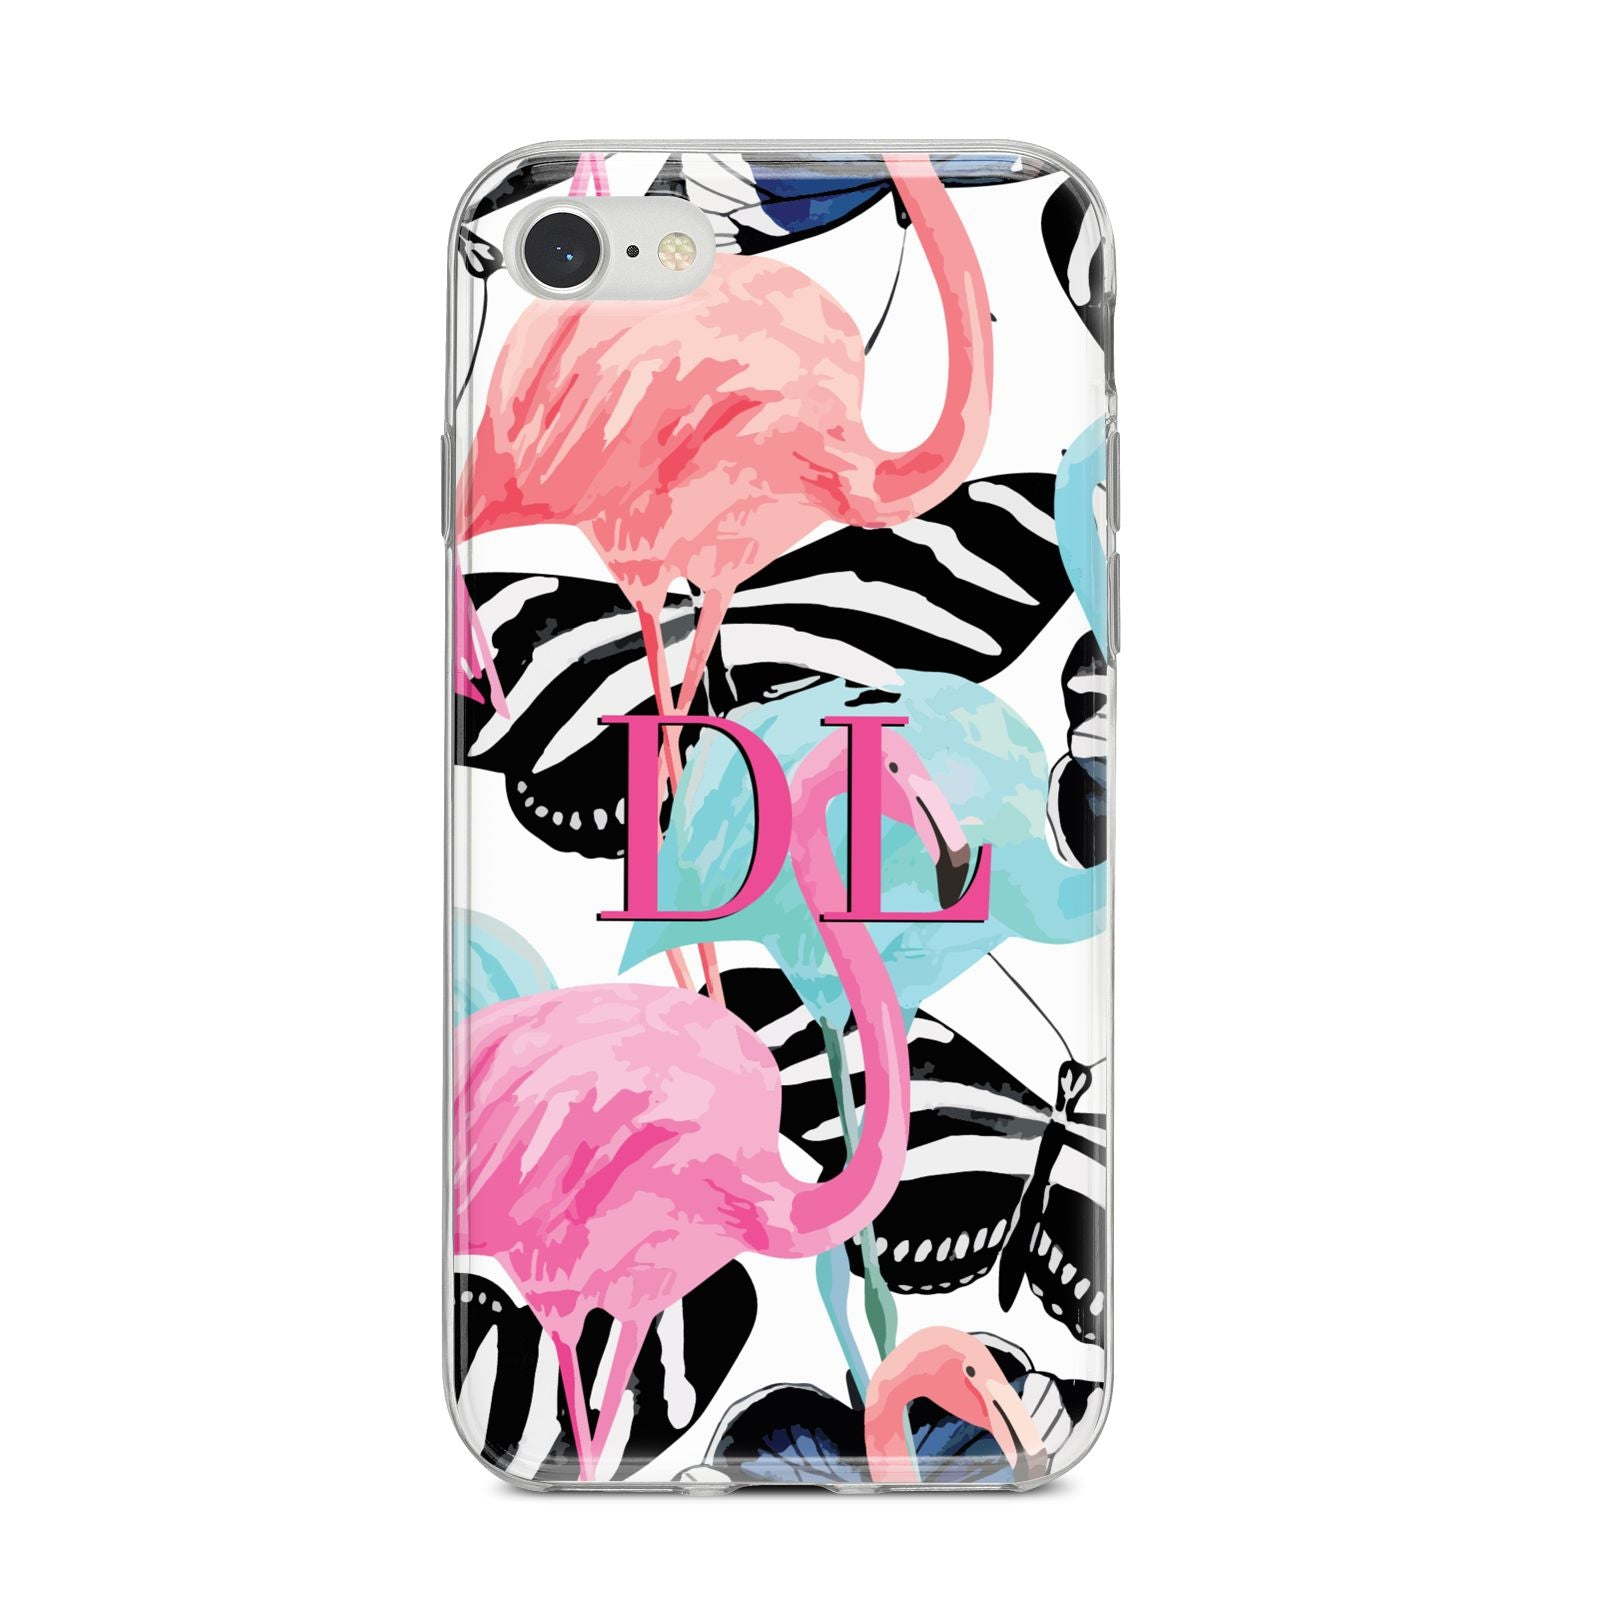 Butterflies Flamingos iPhone 8 Bumper Case on Silver iPhone